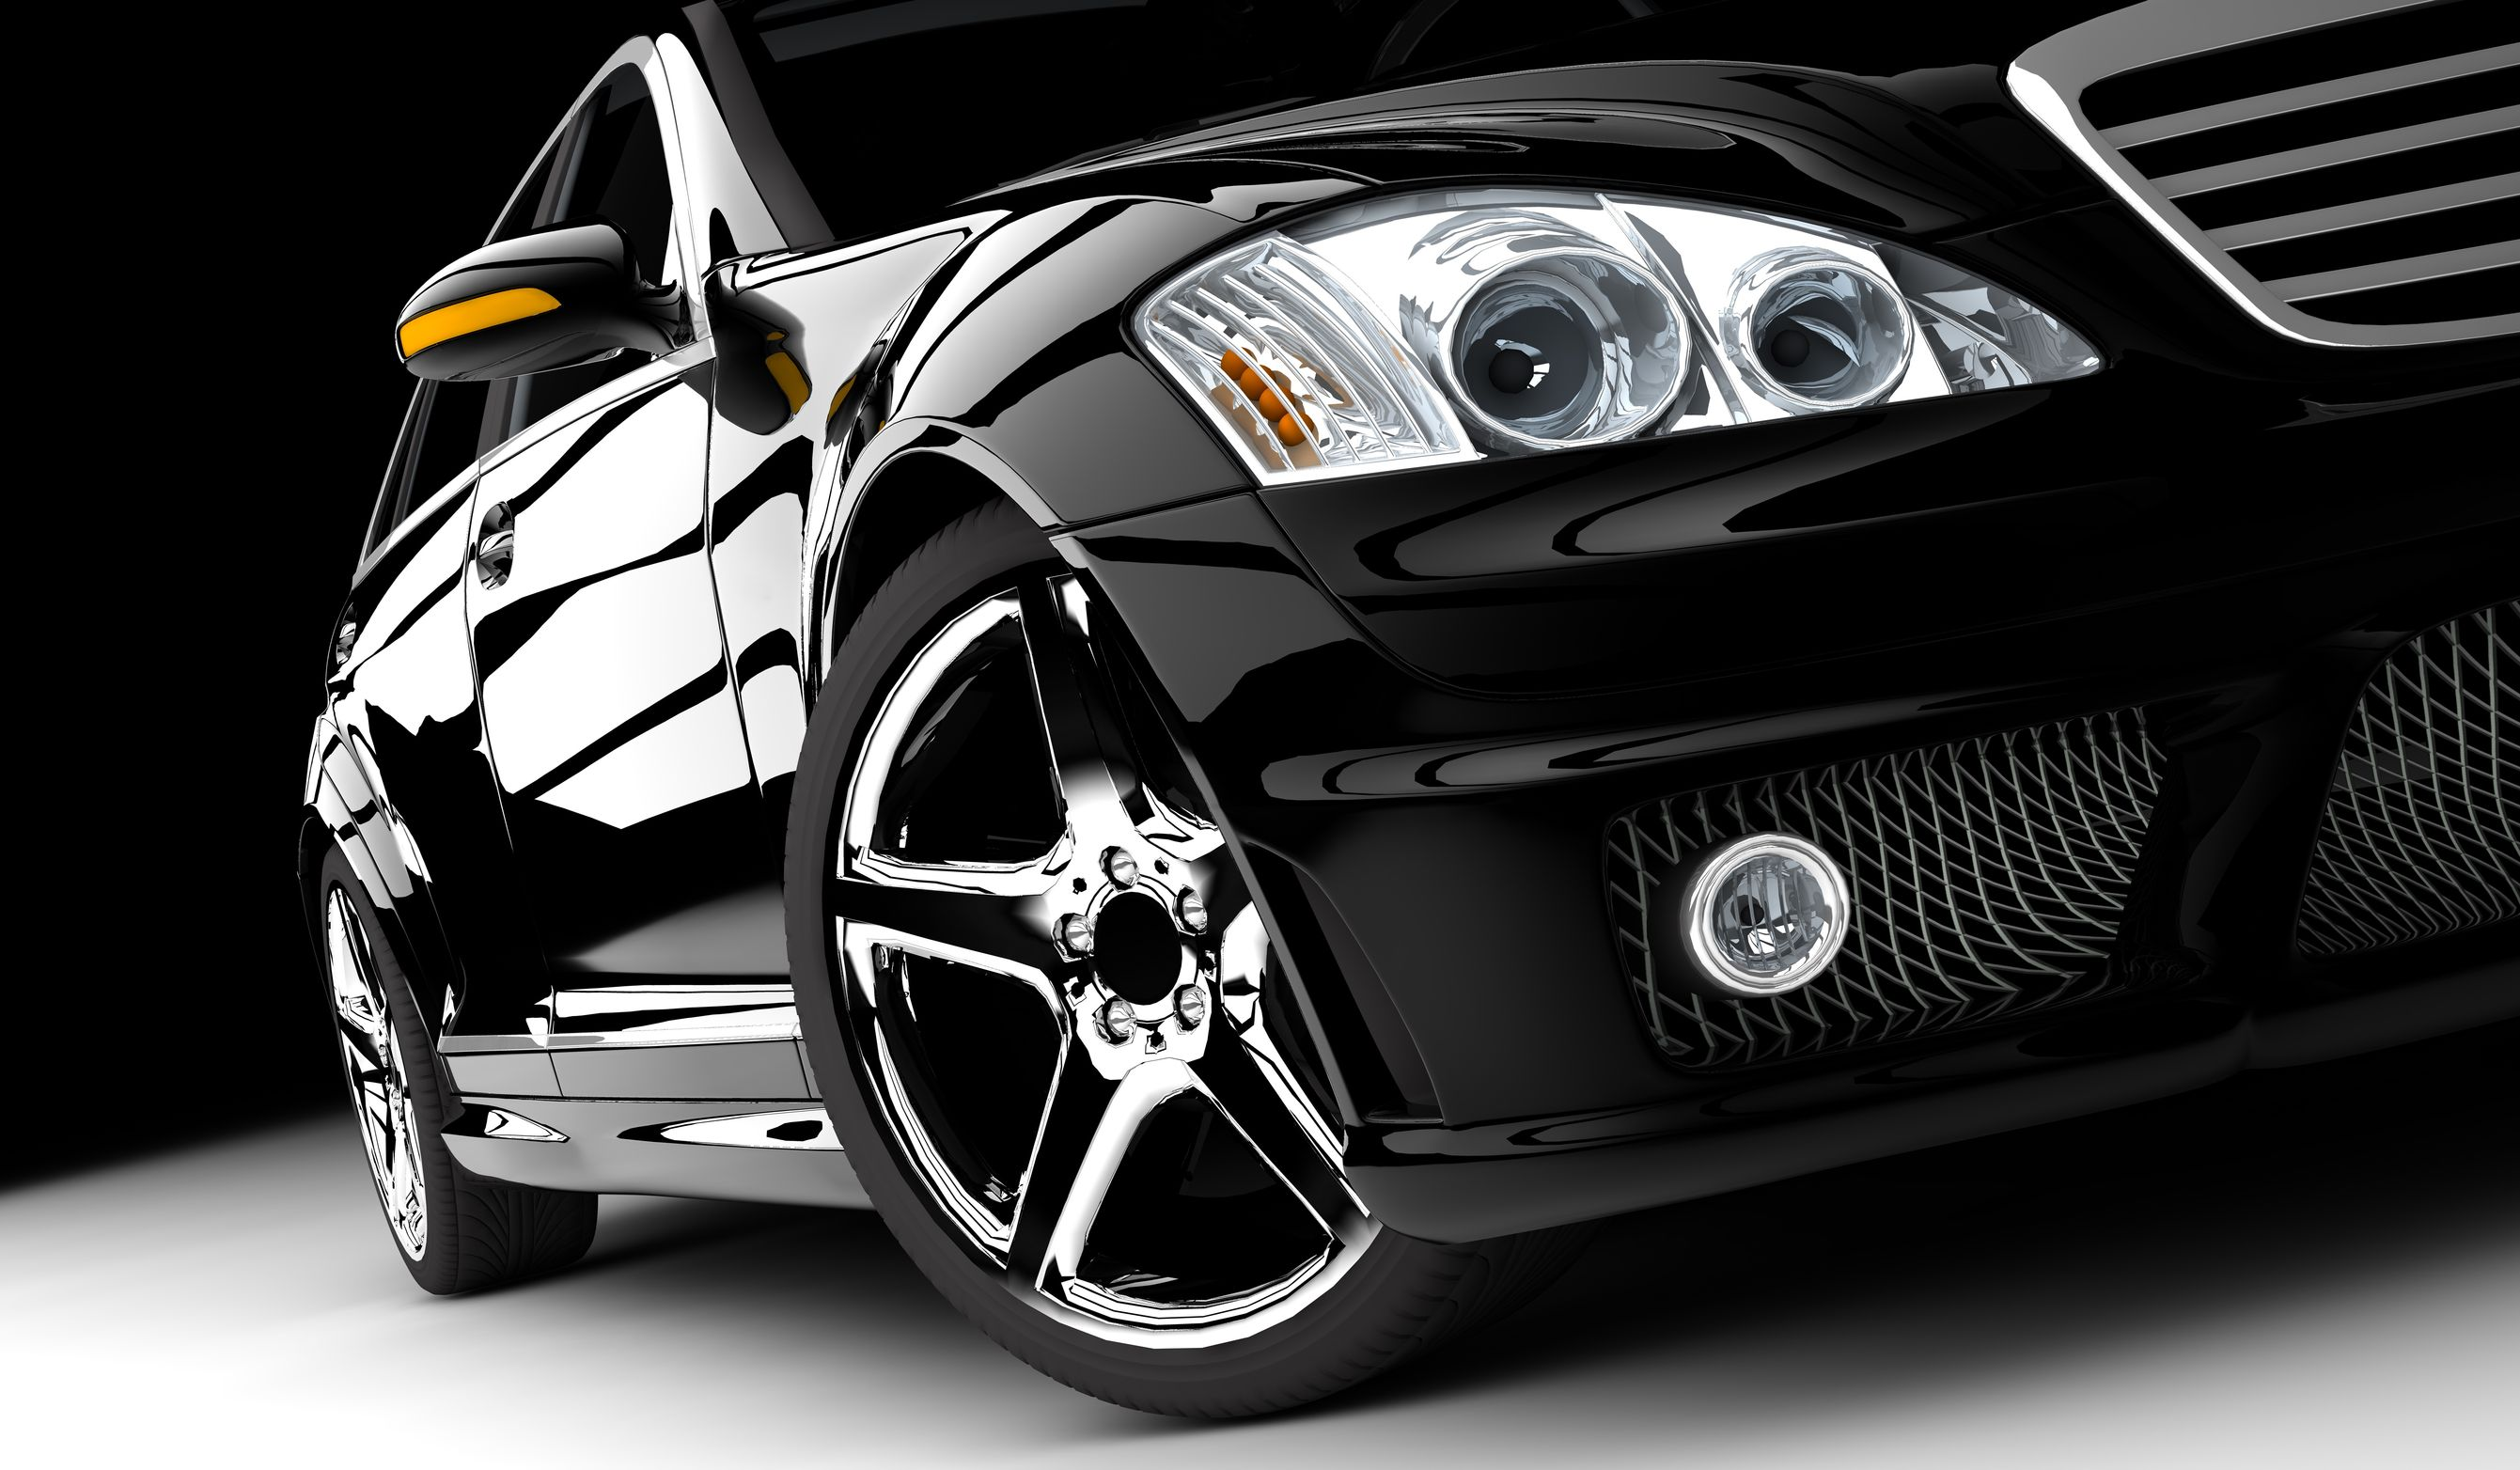 Best Interior Car Detailing Products